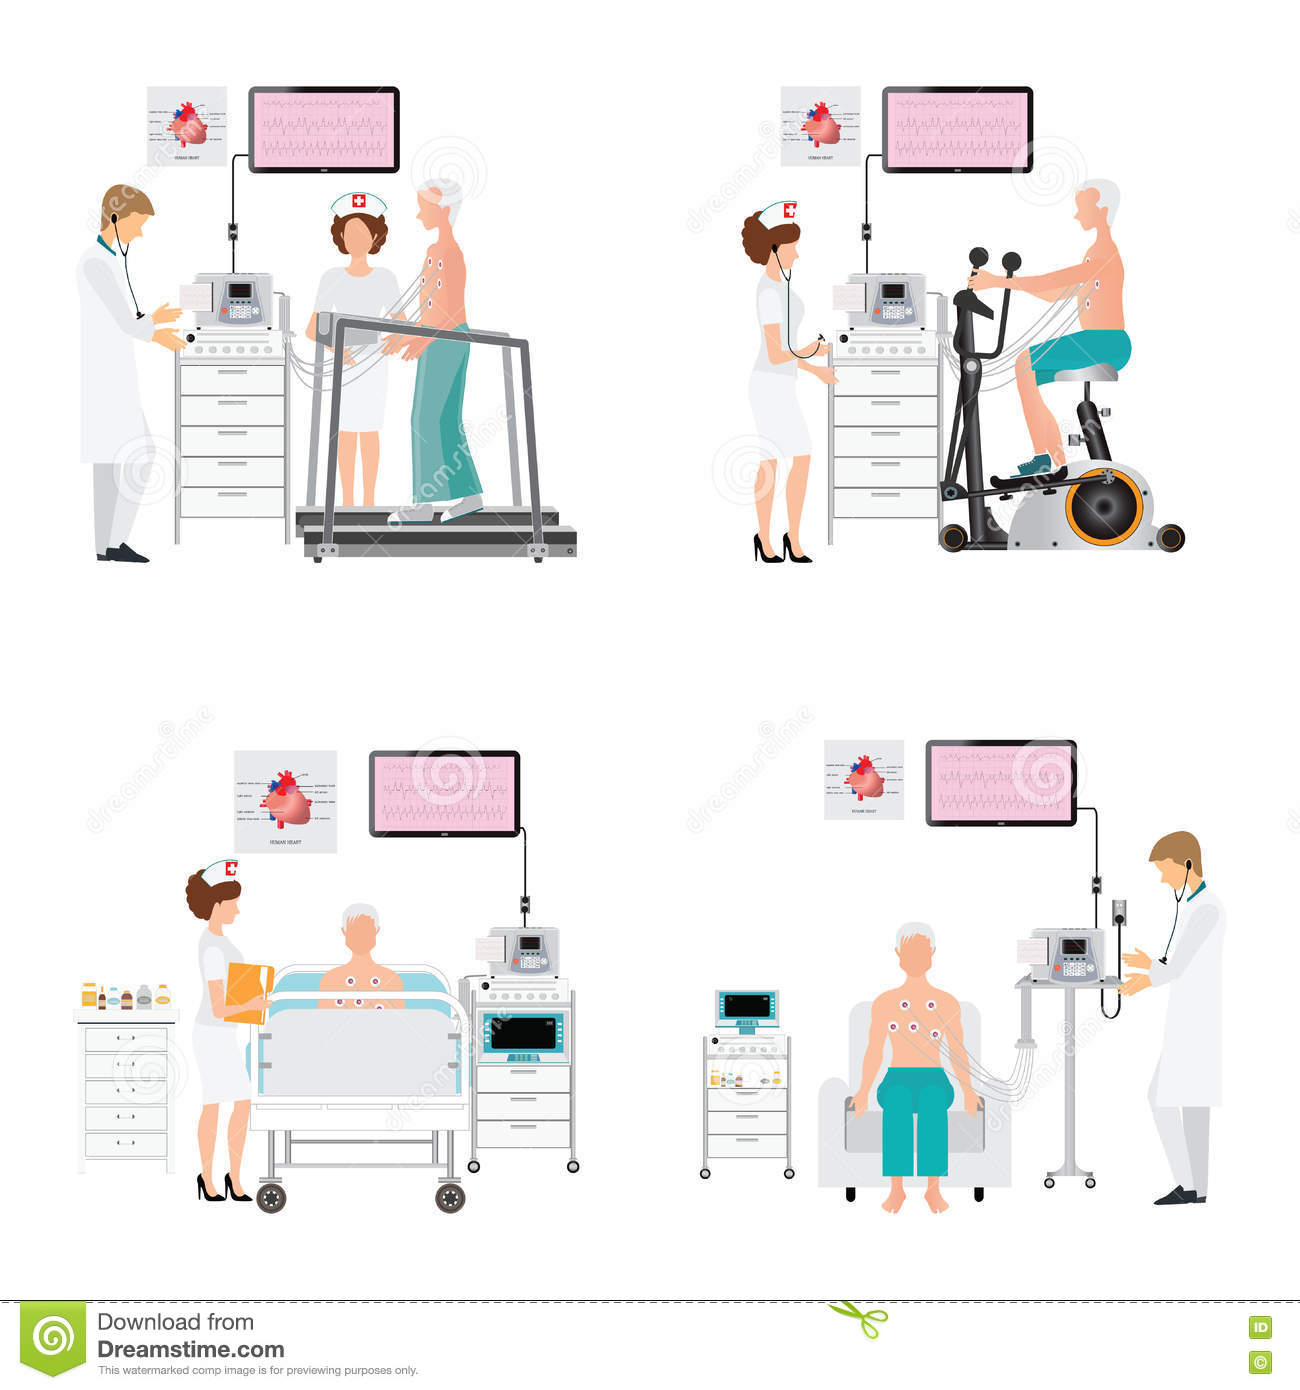 Stress Test Treadmill: ECG Test Or Exercise Stress Test For Heart Disease On